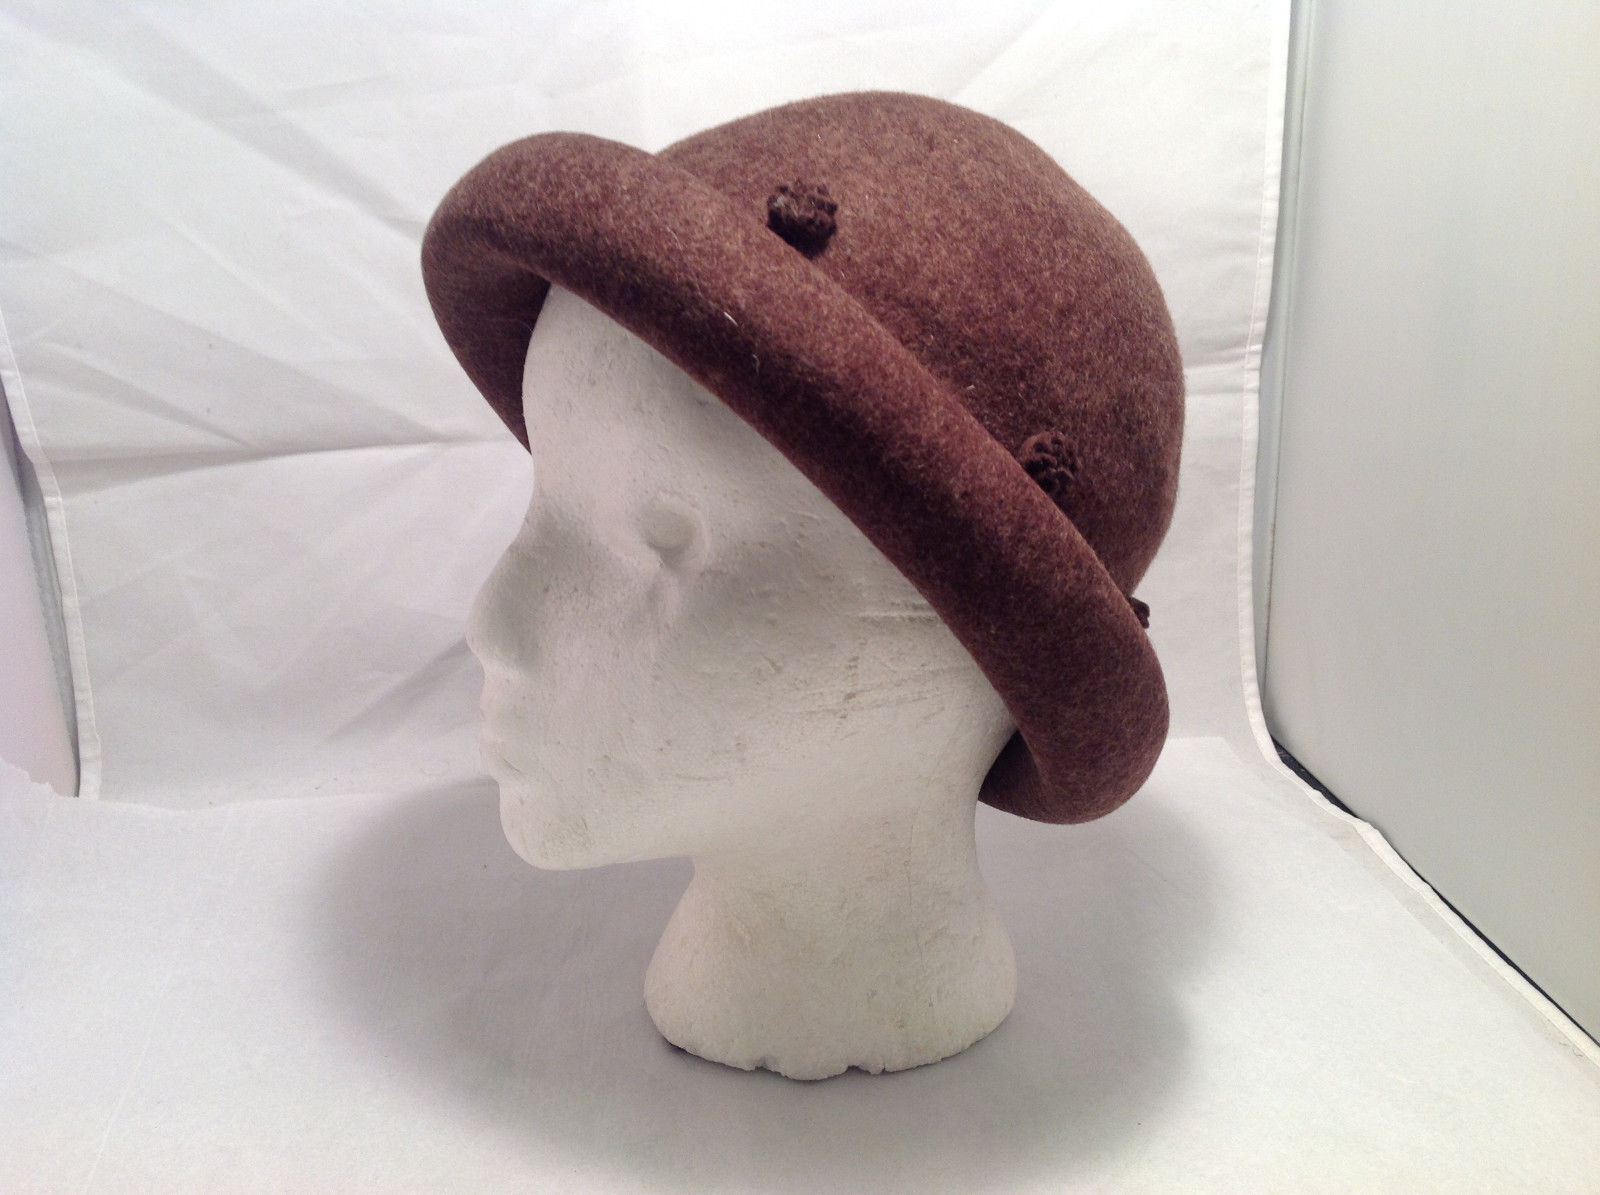 No Brand Women's Vintage Look Firm Bowler Hat Brown Felt Rolled Brim w/ Rosettes